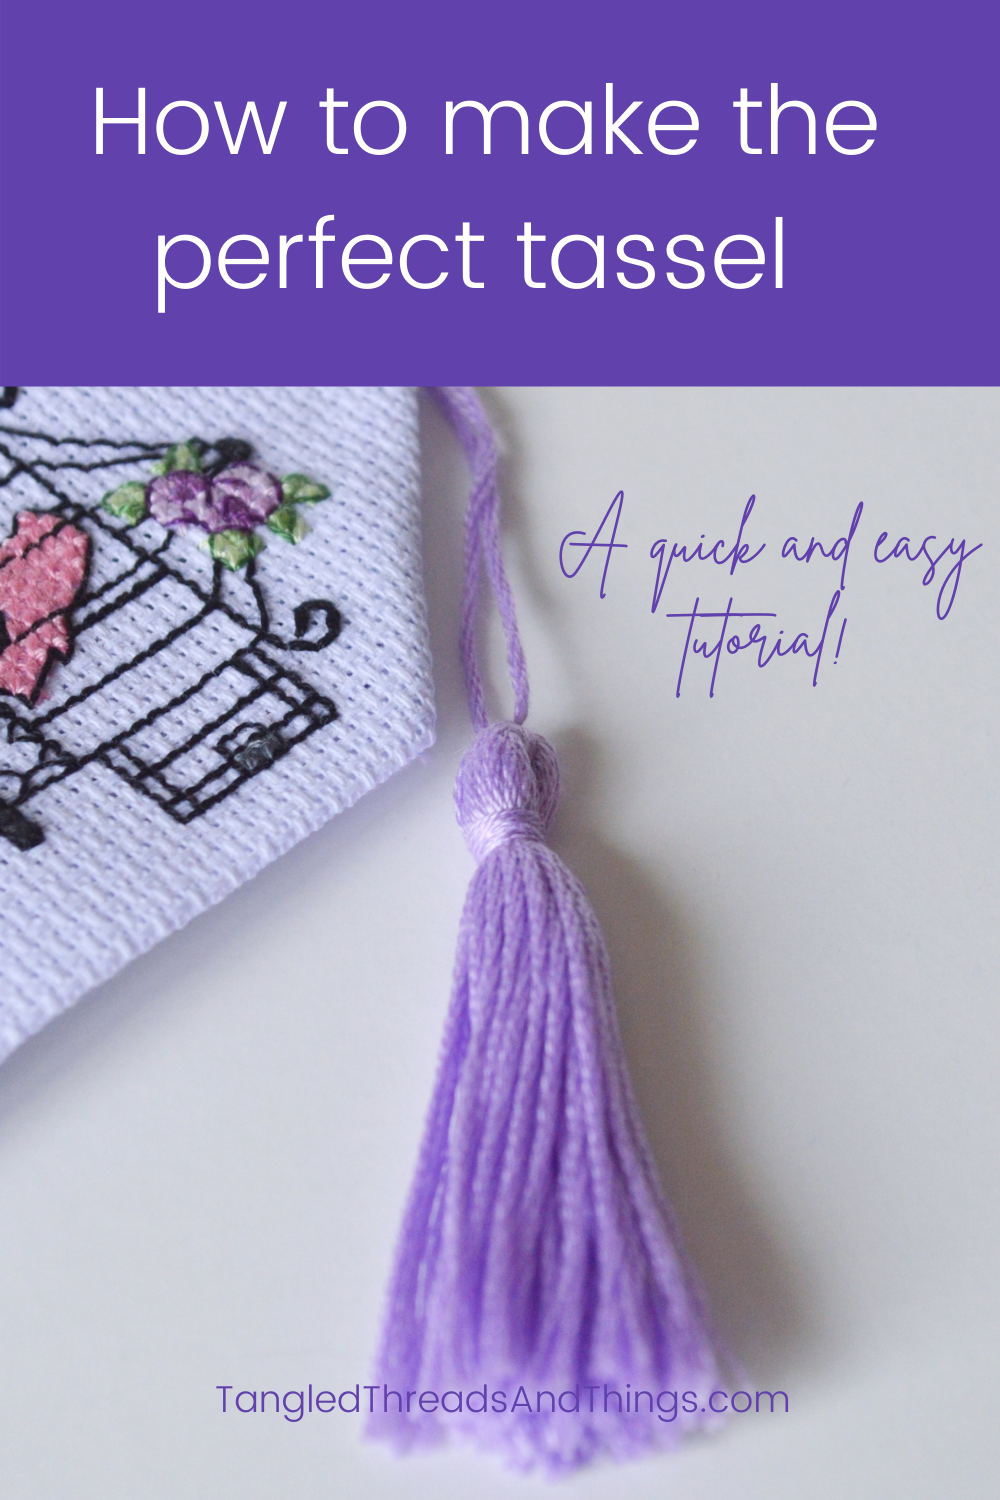 """On a purple background, white text says """"How to make the perfect tassel"""". Below the purple box is an image of a purple tassel tied to a bookmark."""